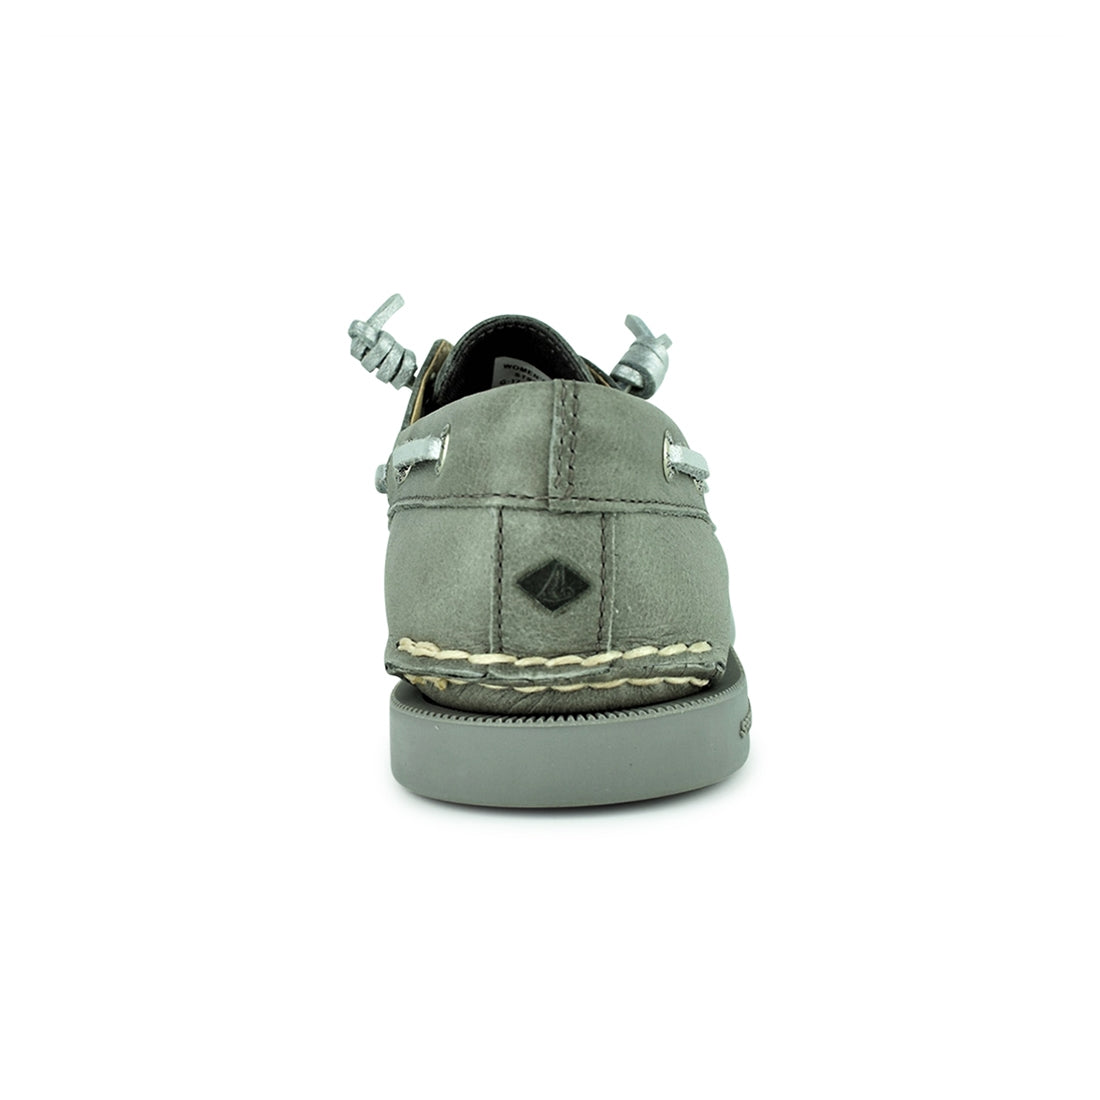 A/0 2 - Sperry Lace Up Grey